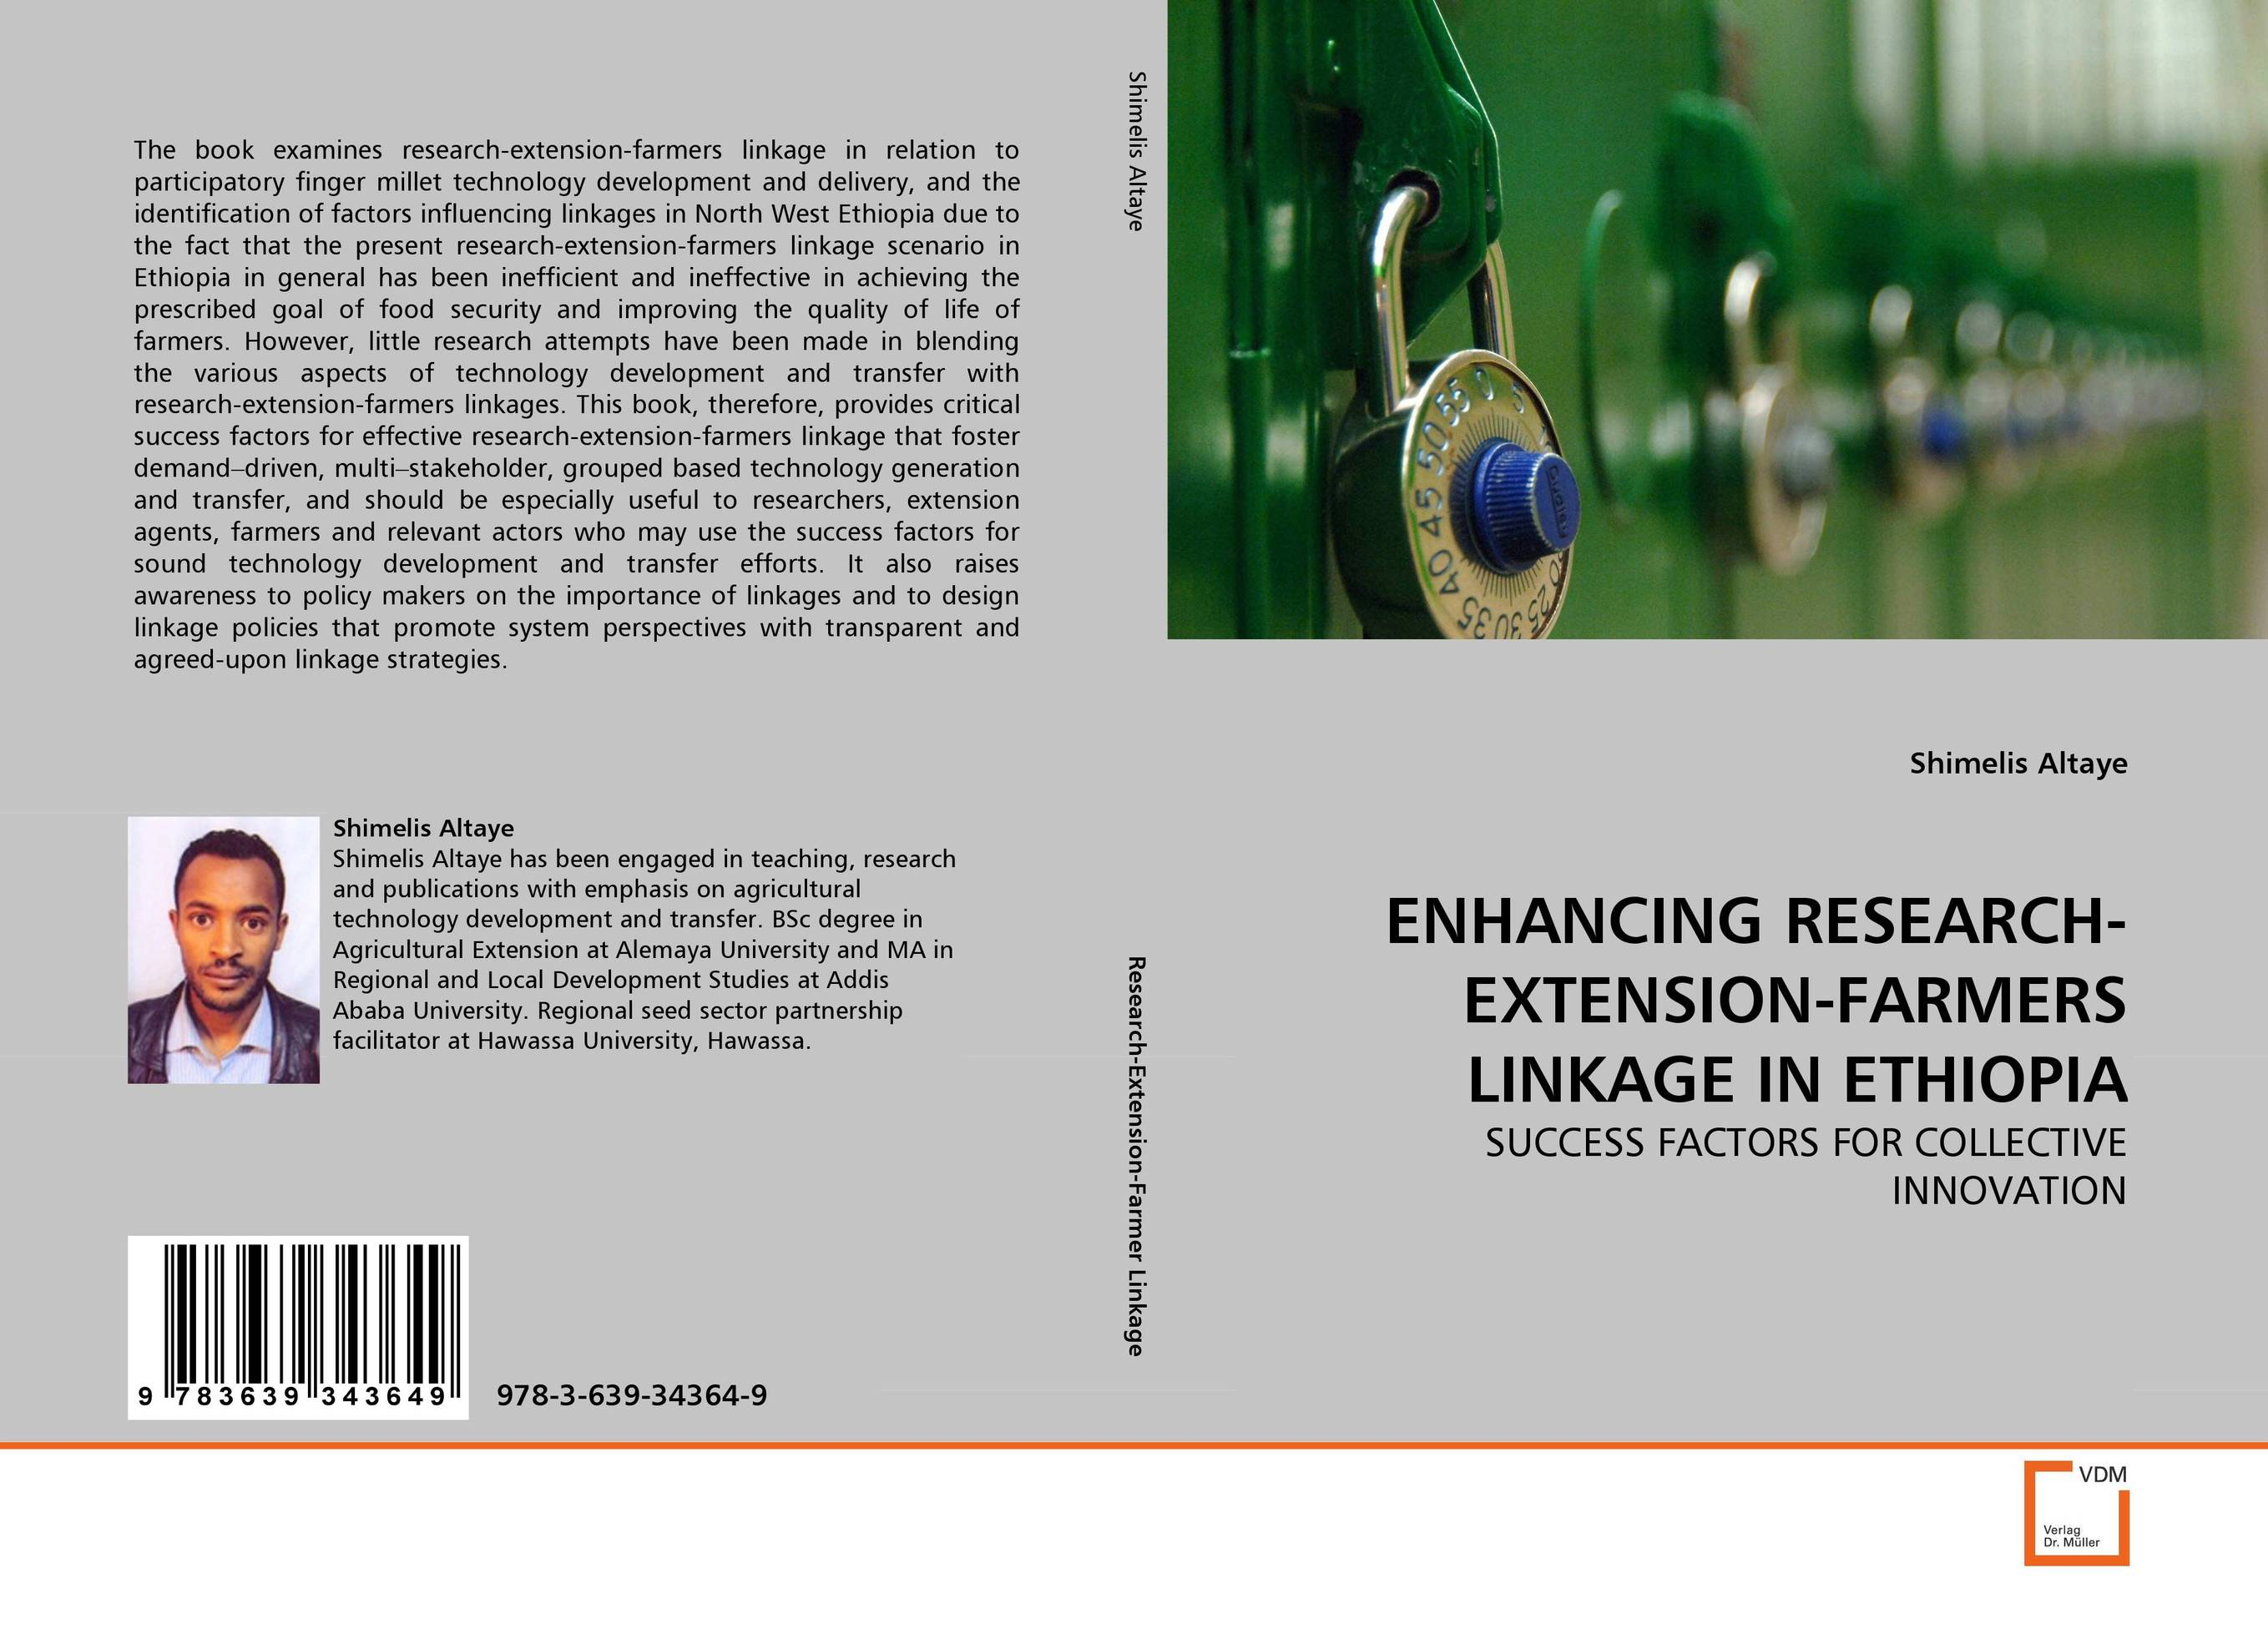 Фото ENHANCING RESEARCH-EXTENSION-FARMERS LINKAGE IN ETHIOPIA cervical cancer in amhara region in ethiopia